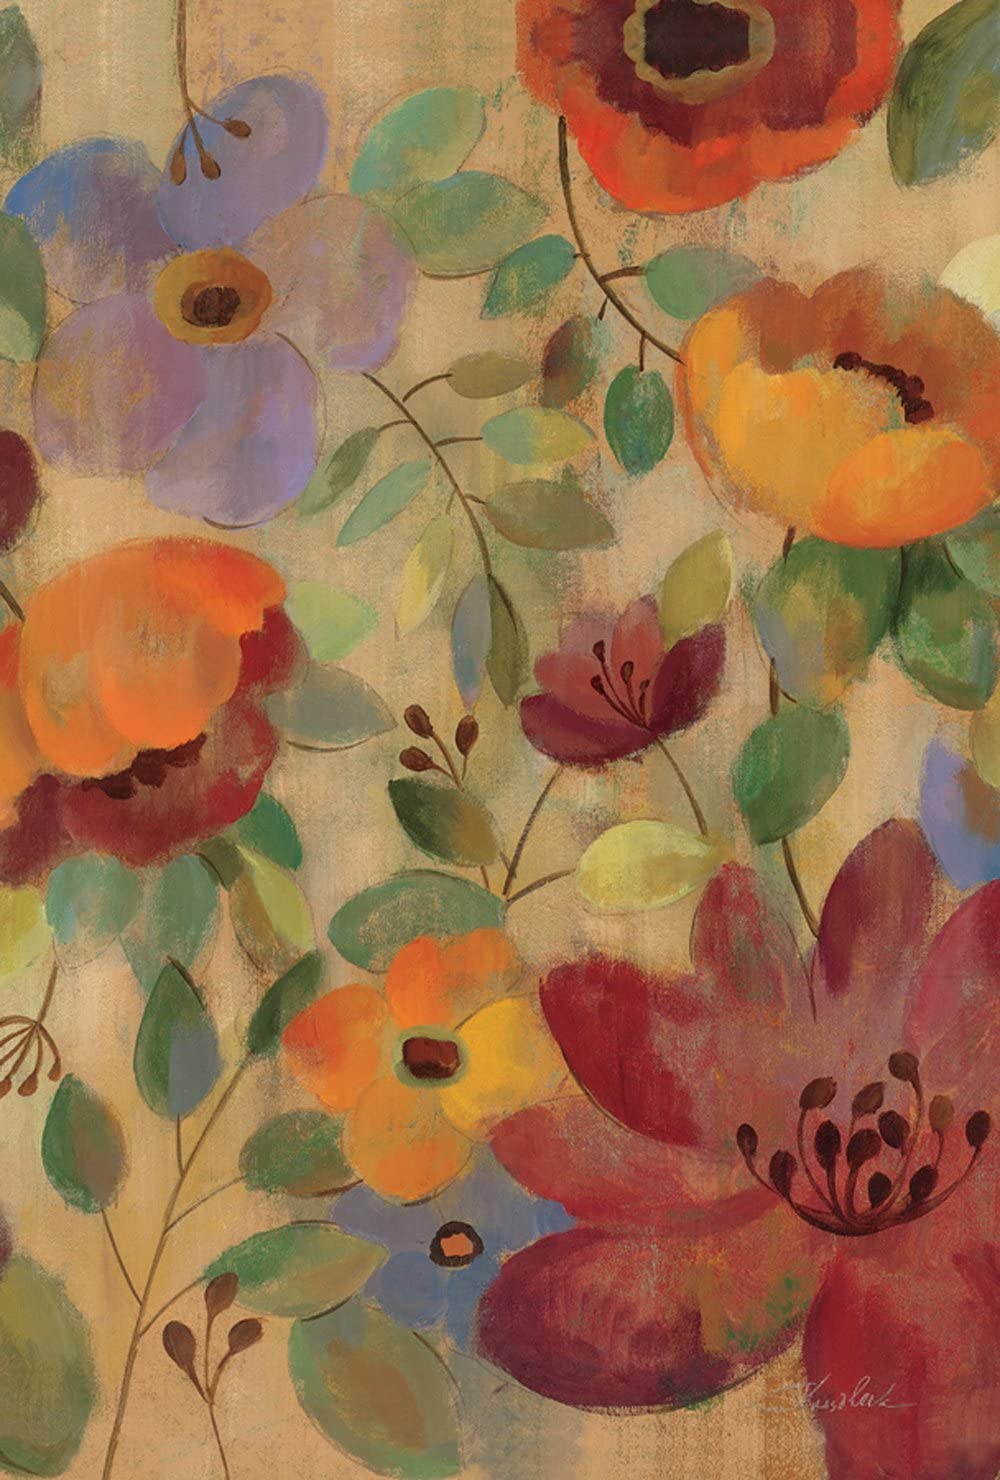 Toland Home Garden 119890 Oil Painted Poppies and Lilies 12.5 x 18 Inch Decorative, Garden Flag (12.5